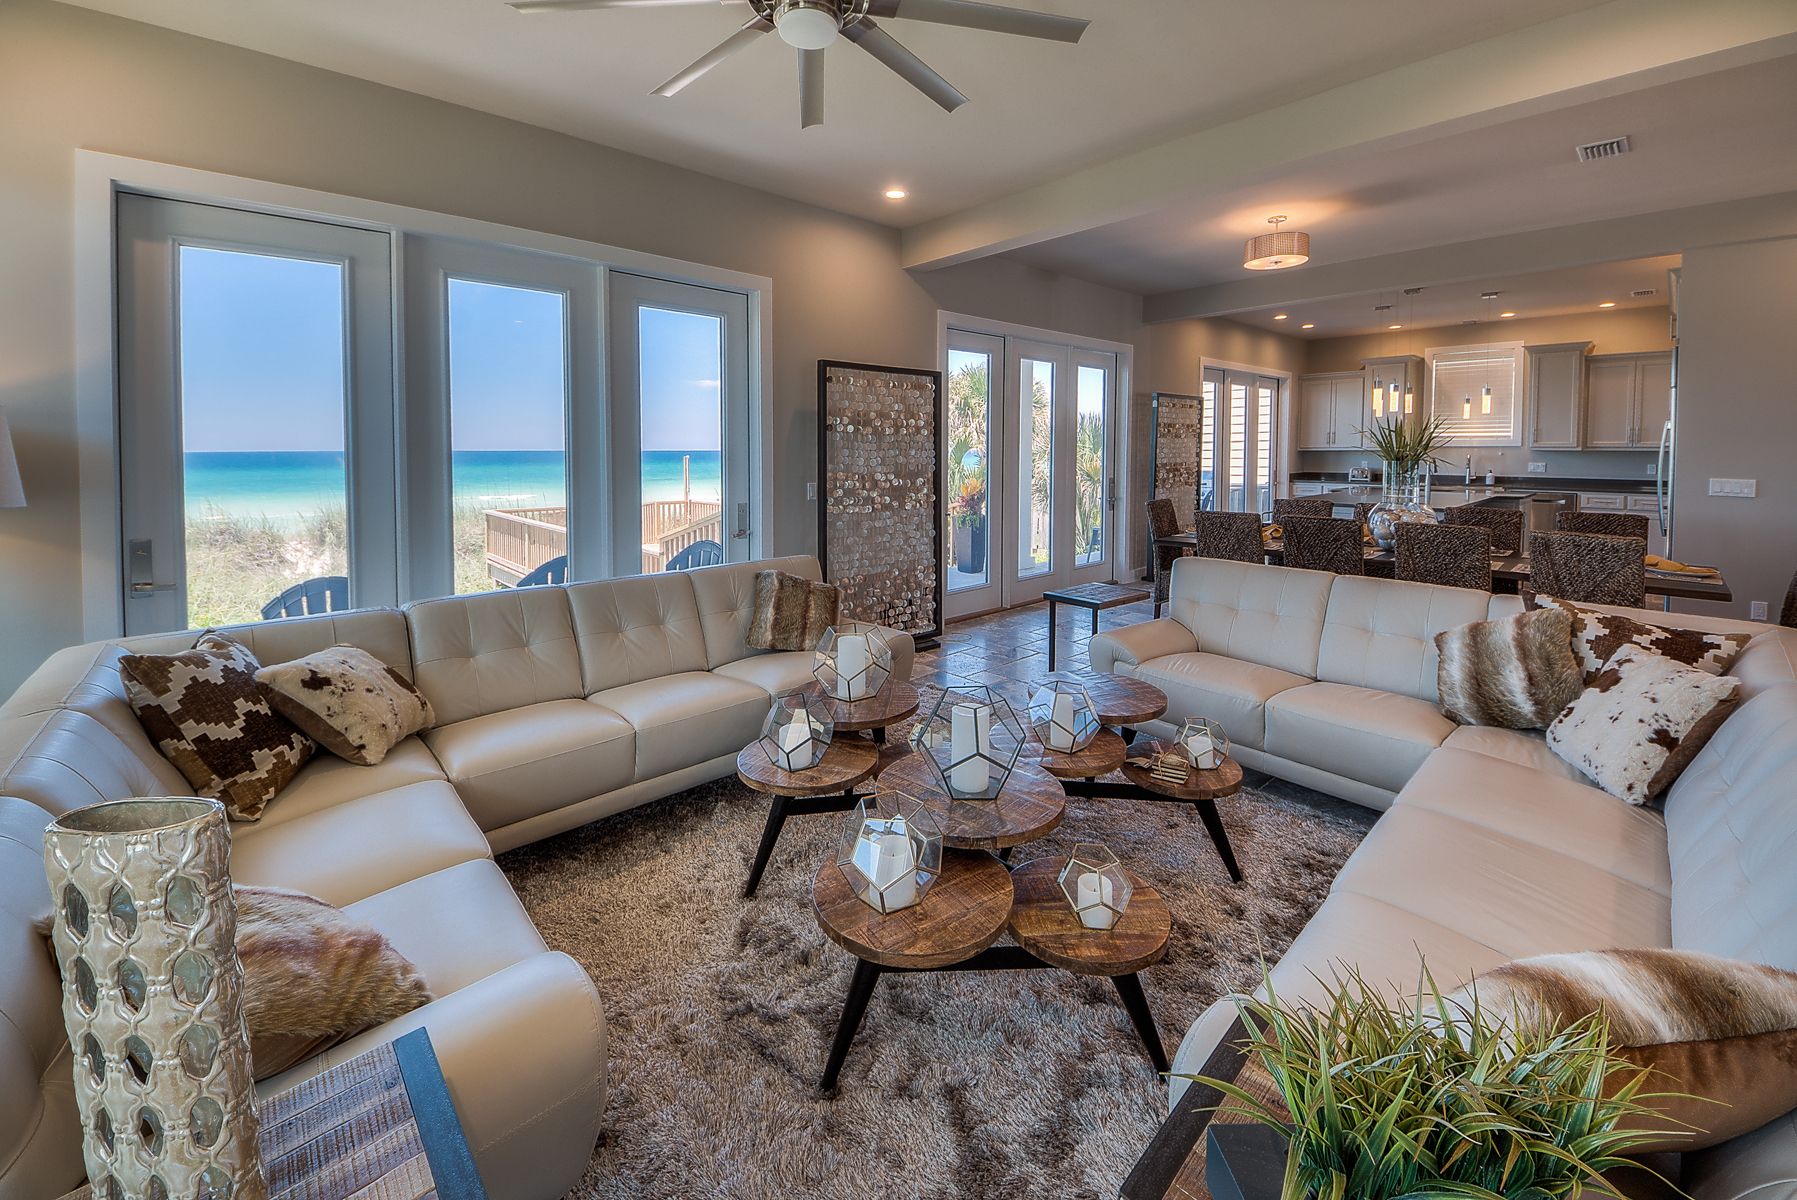 一戸建て のために 売買 アット RECENTLY COMPLETED BEACHFRONT HOME OFFERS ULTIMATE ESCAPE 16611 Front Beach Rd Lullwater Beach, Panama City Beach, フロリダ, 32413 アメリカ合衆国